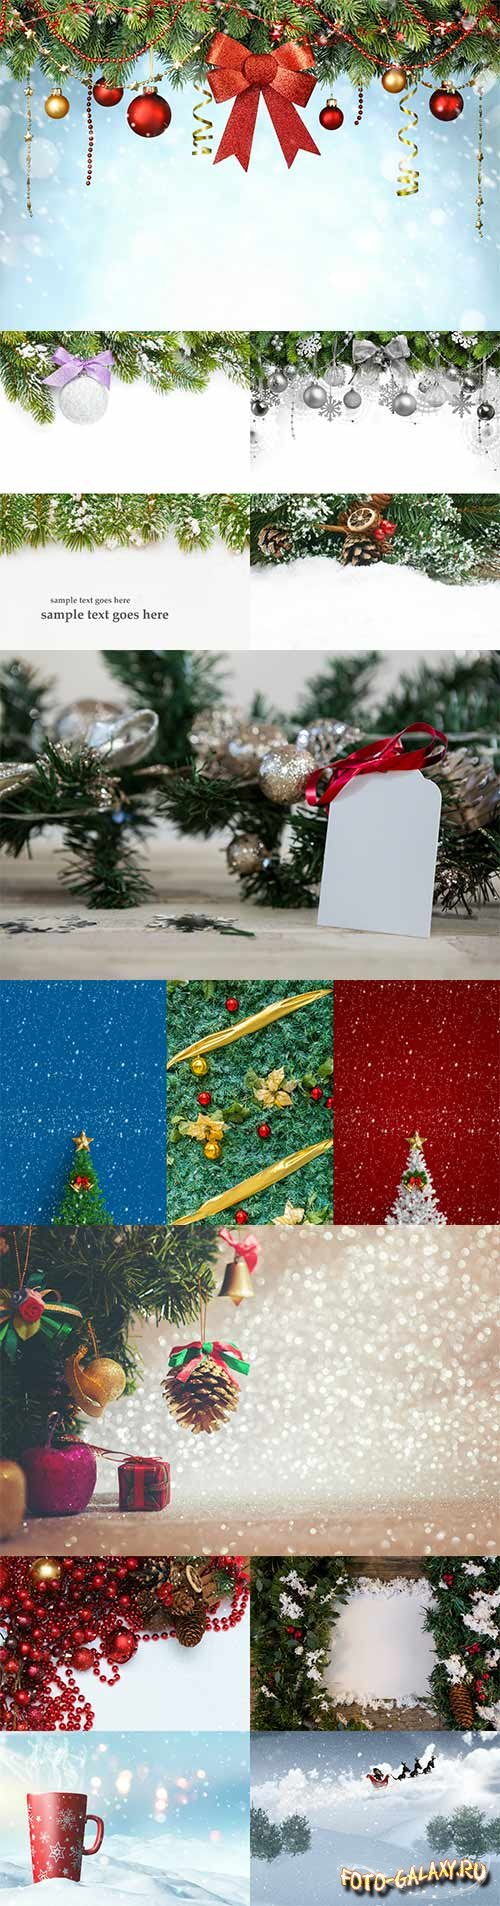 Christmas bitmap backgrounds 9